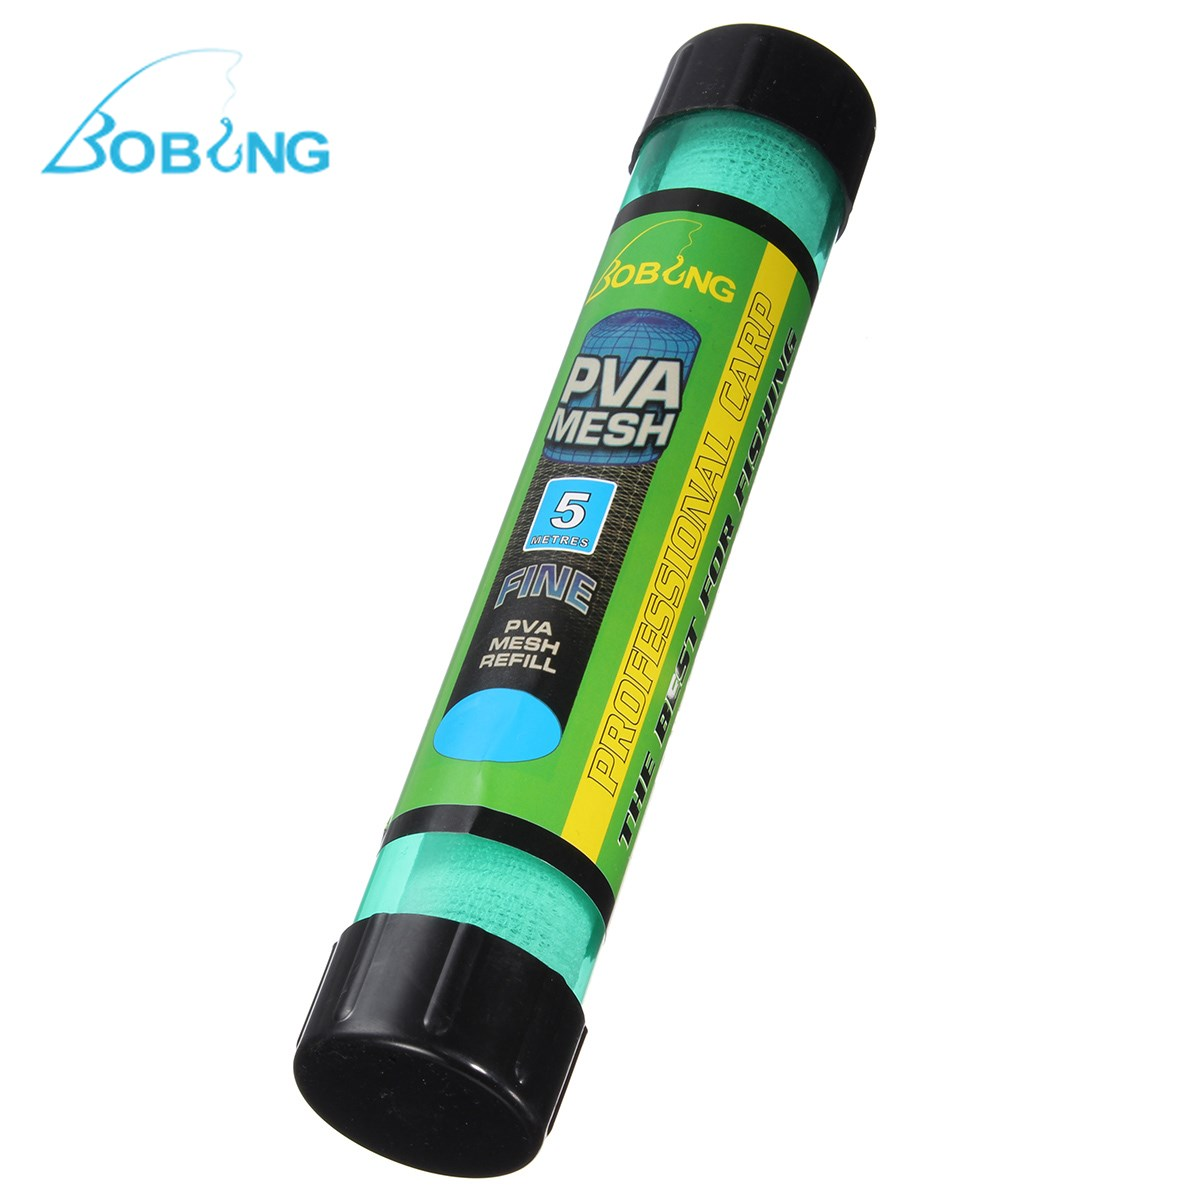 Bobing 5M 37mm PVA Dissolving Narrow Mesh in Tube Carp Fish Feeder Water Solution Refill Net with Plunger Boilie Fishing Tackle машинка брунер poli robocar